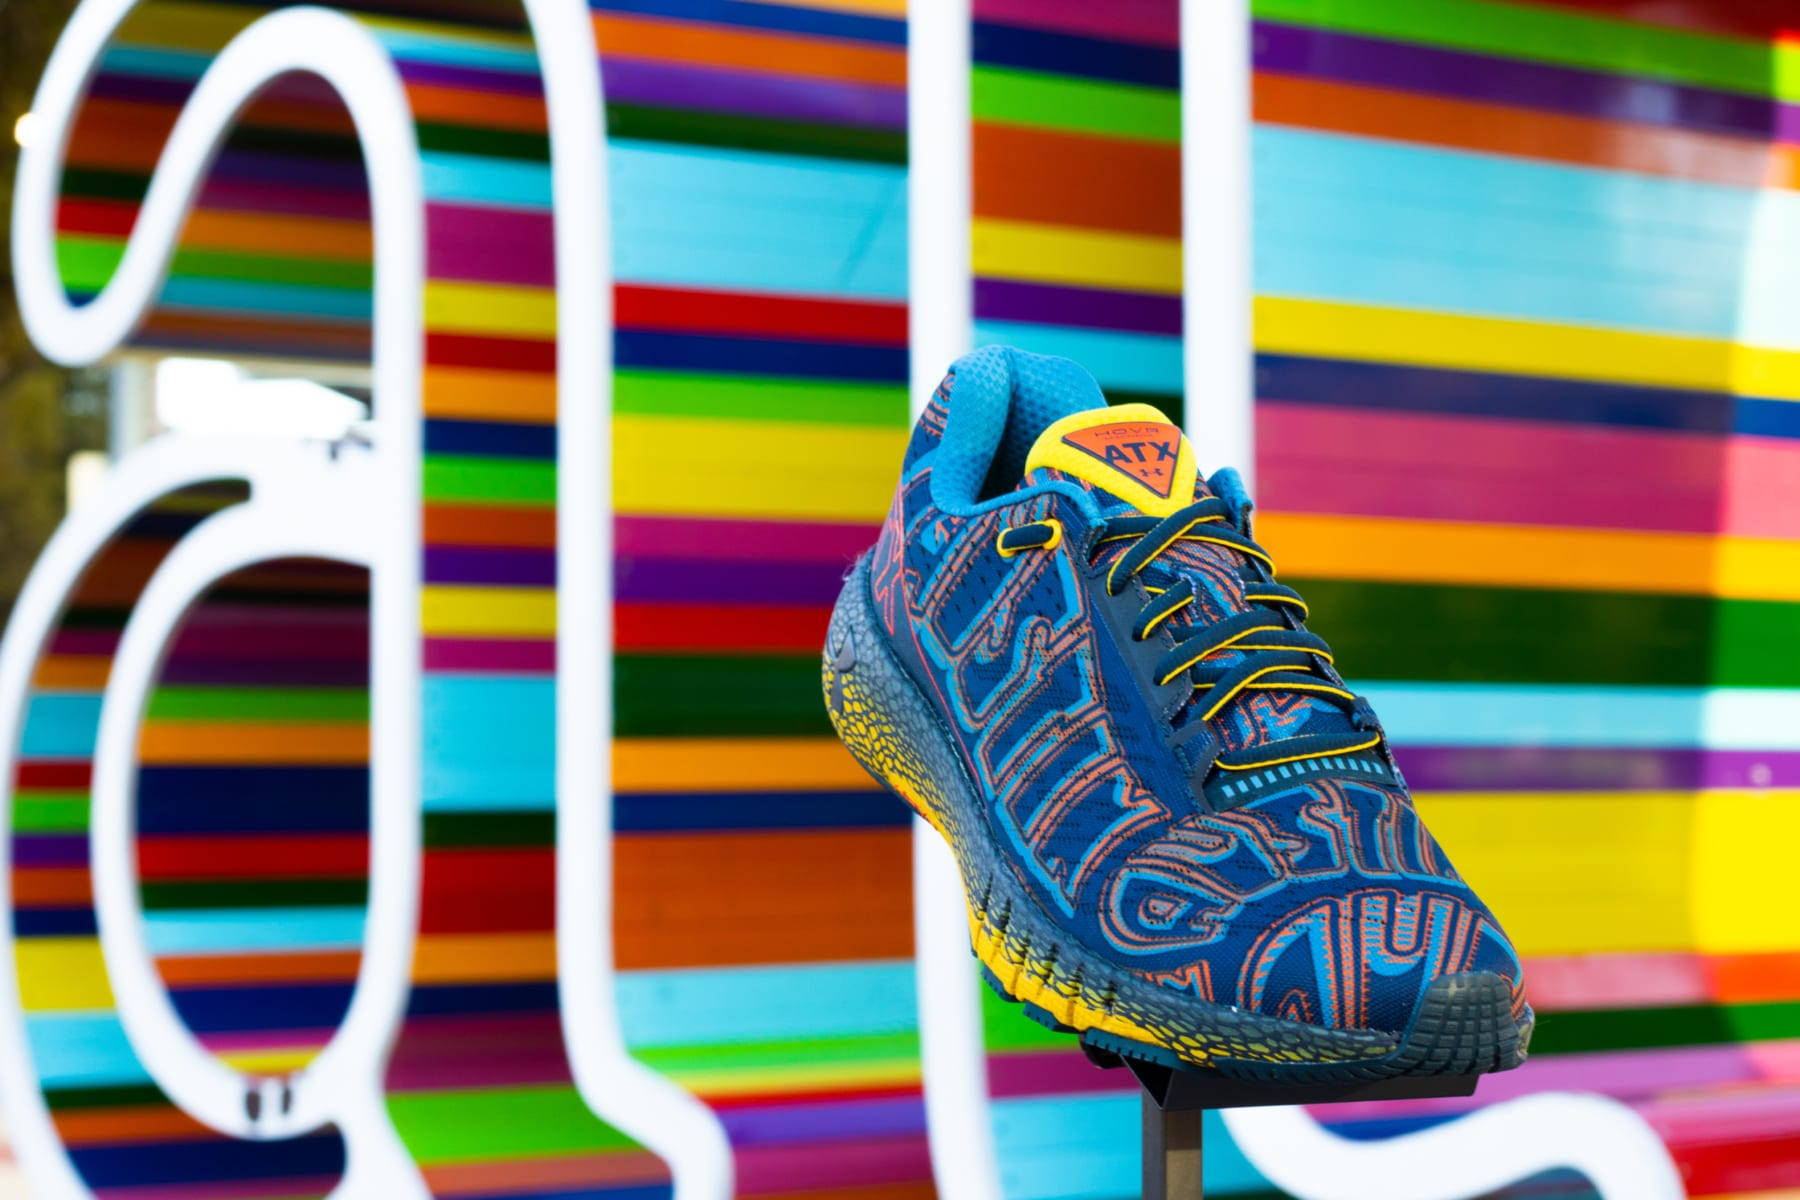 Image of the limited-edition Under Armour HOVR Machina ATX shoe in front of a multi-colored ATX sign. The Austin Marathon is giving away a pair of these shoes every day in April for their 30th Anniversary Giveaway!